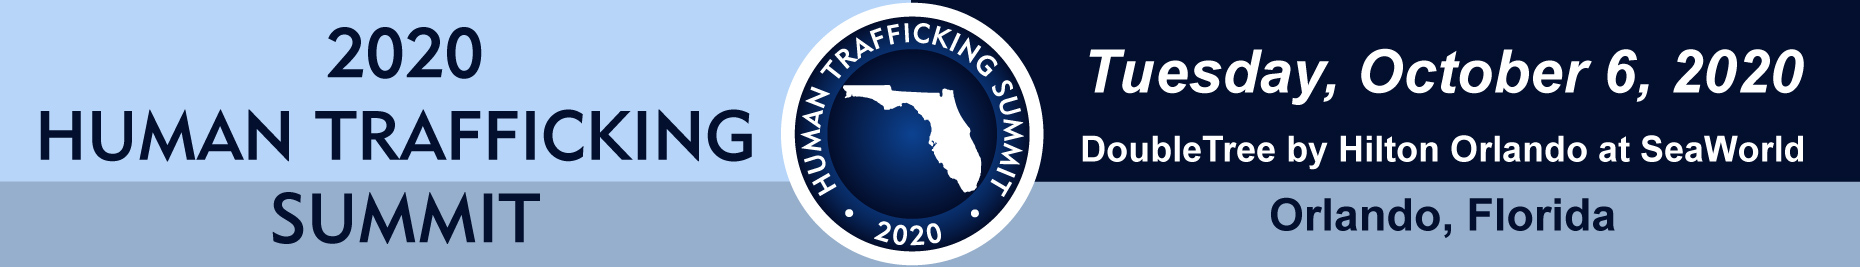 Human Trafficking Summit Banner